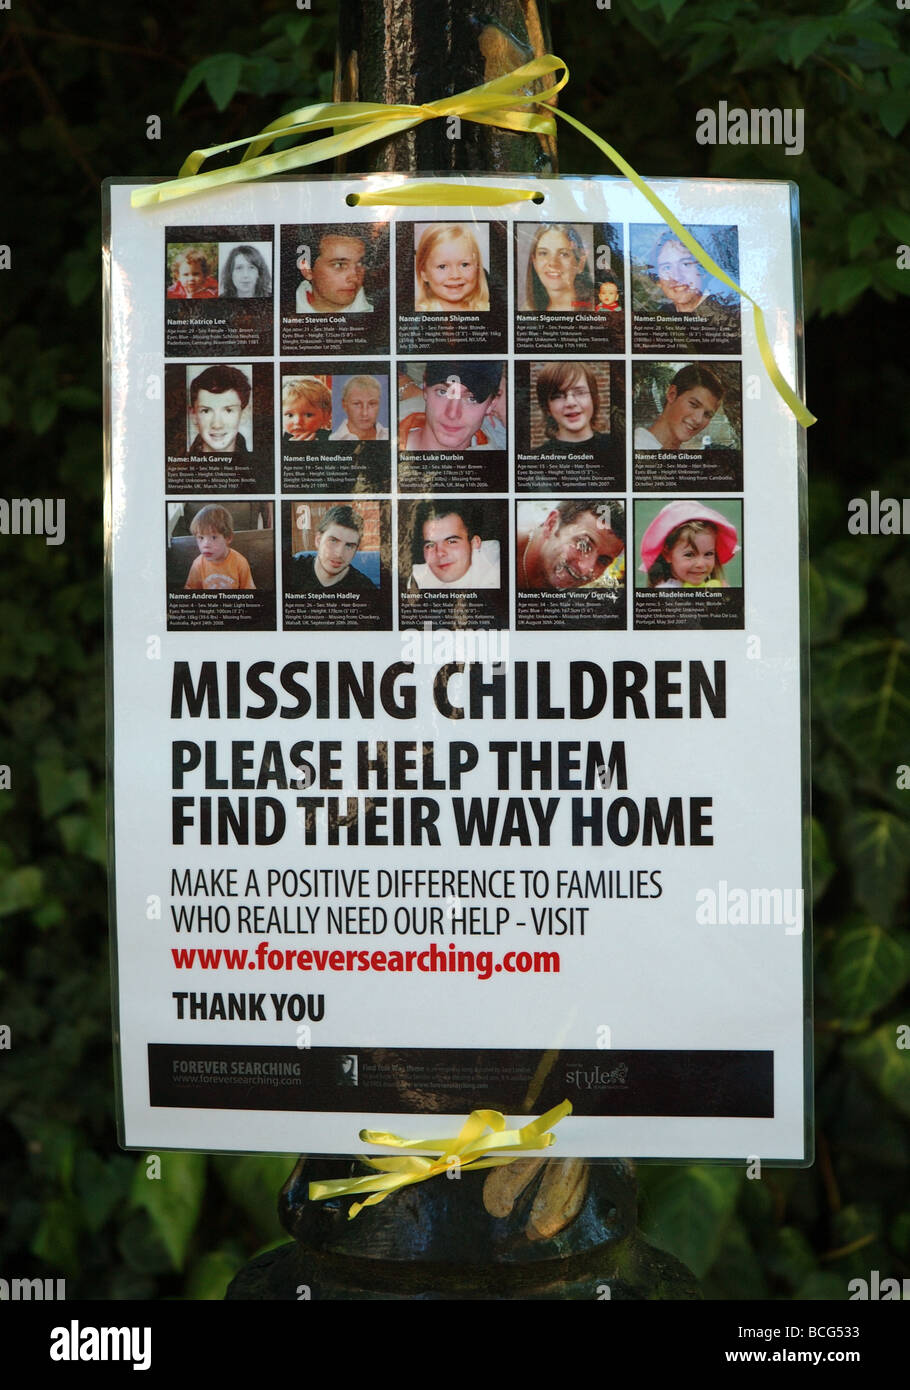 missing children poster, England, UK Stock Photo